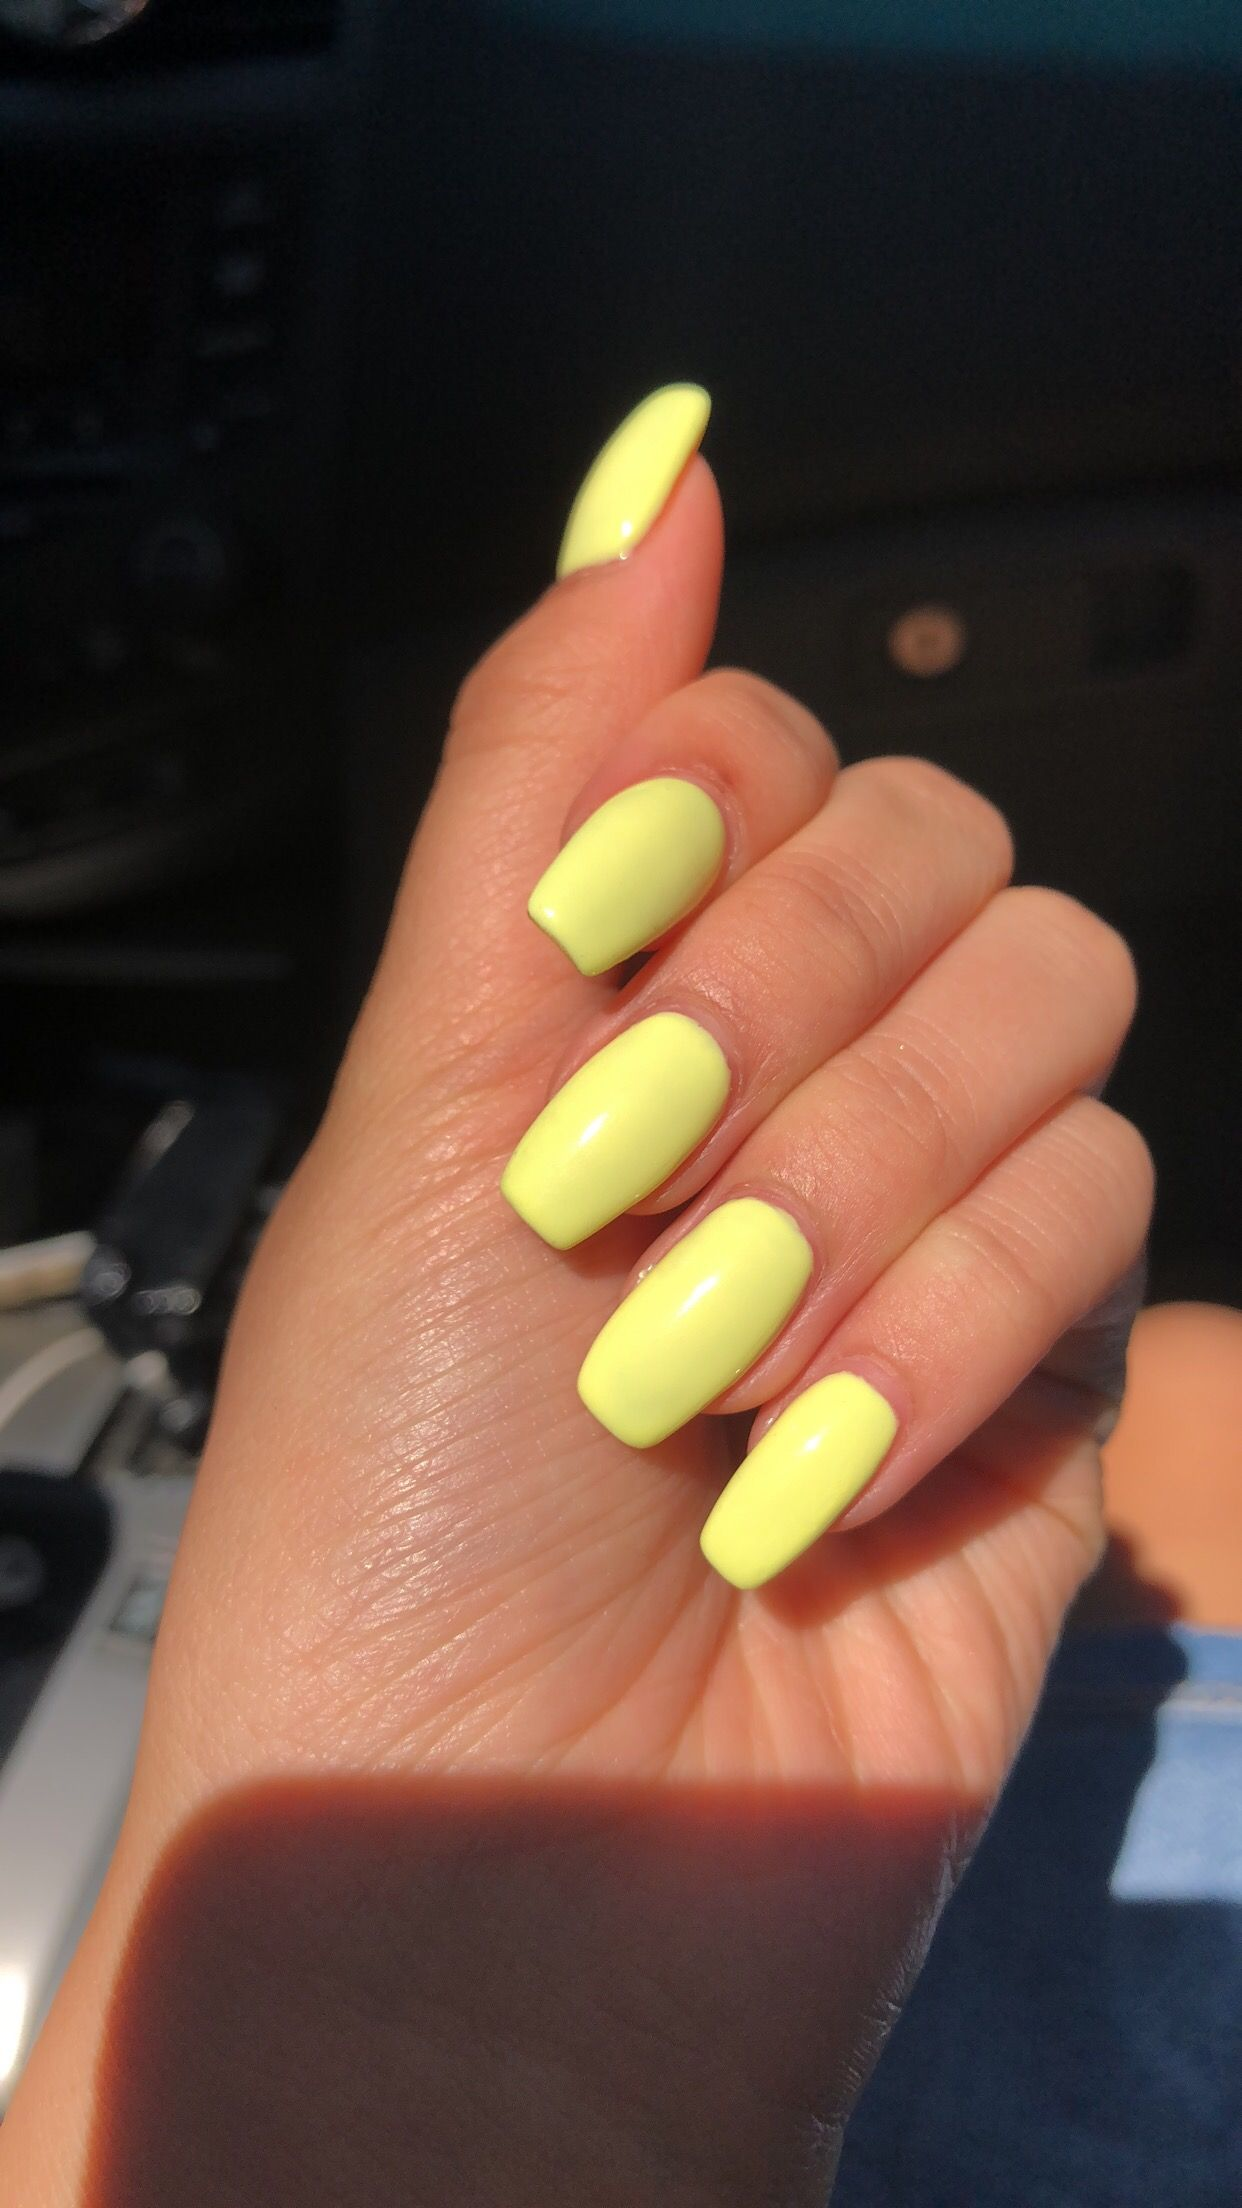 Pastel Yellow Acrylic Nails Nails Yellow Pastel Nails Acrylic Nails Pastel Acurlic Nails